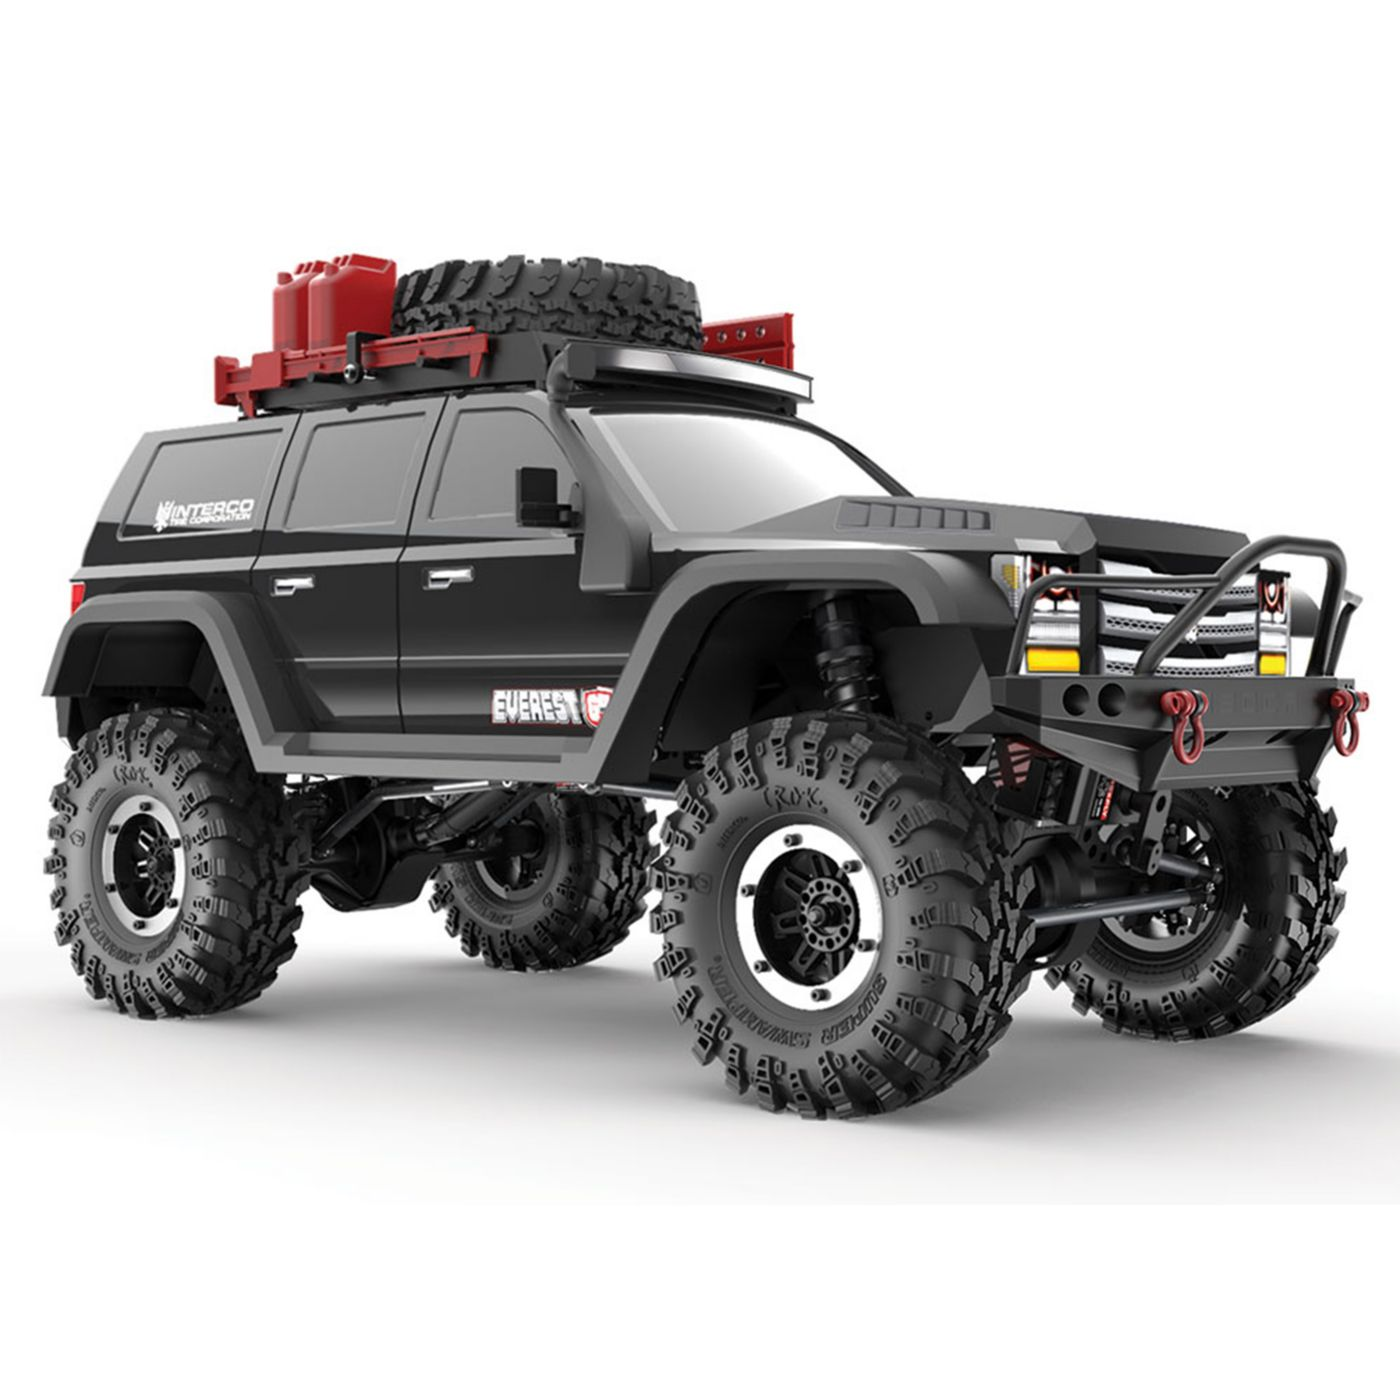 RedCat RER09587 - 1/10 Everest Gen7 Pro 4WD Crawler Brushed RTR, Black